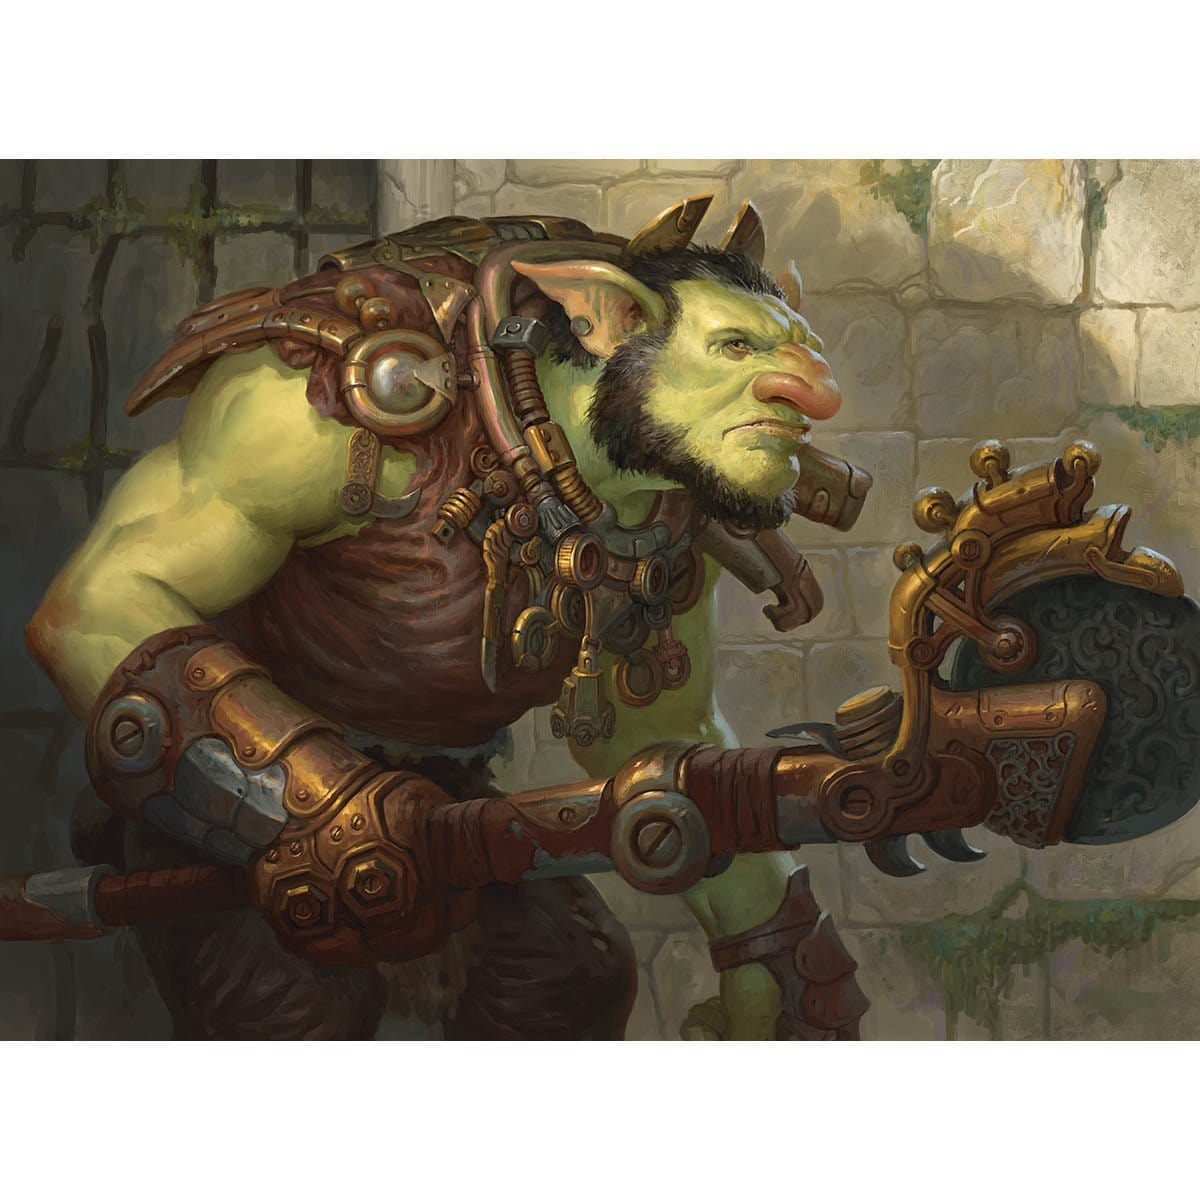 Goblin Trashmaster Print - Print - Original Magic Art - Accessories for Magic the Gathering and other card games